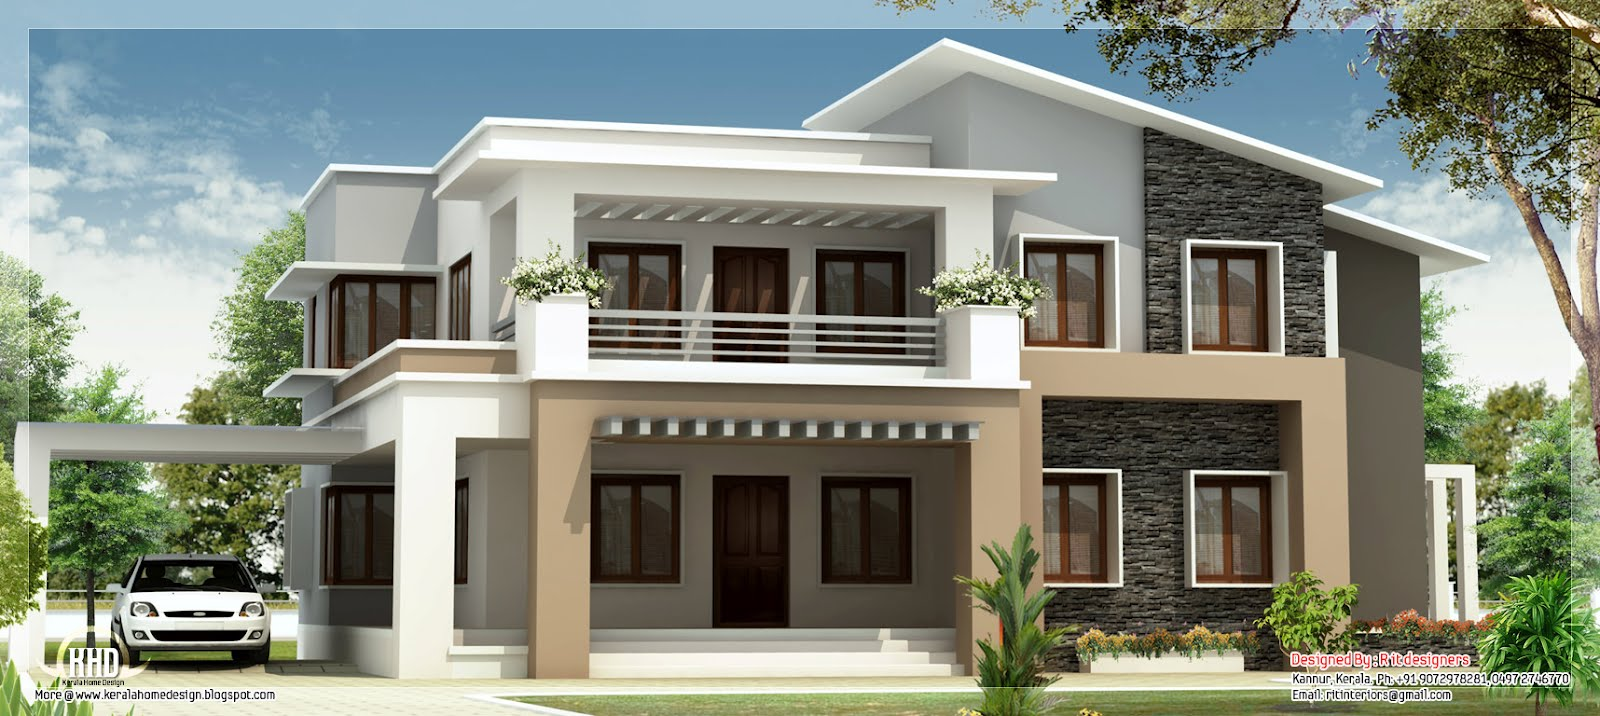 double floor house design by r it designers kannur kerala